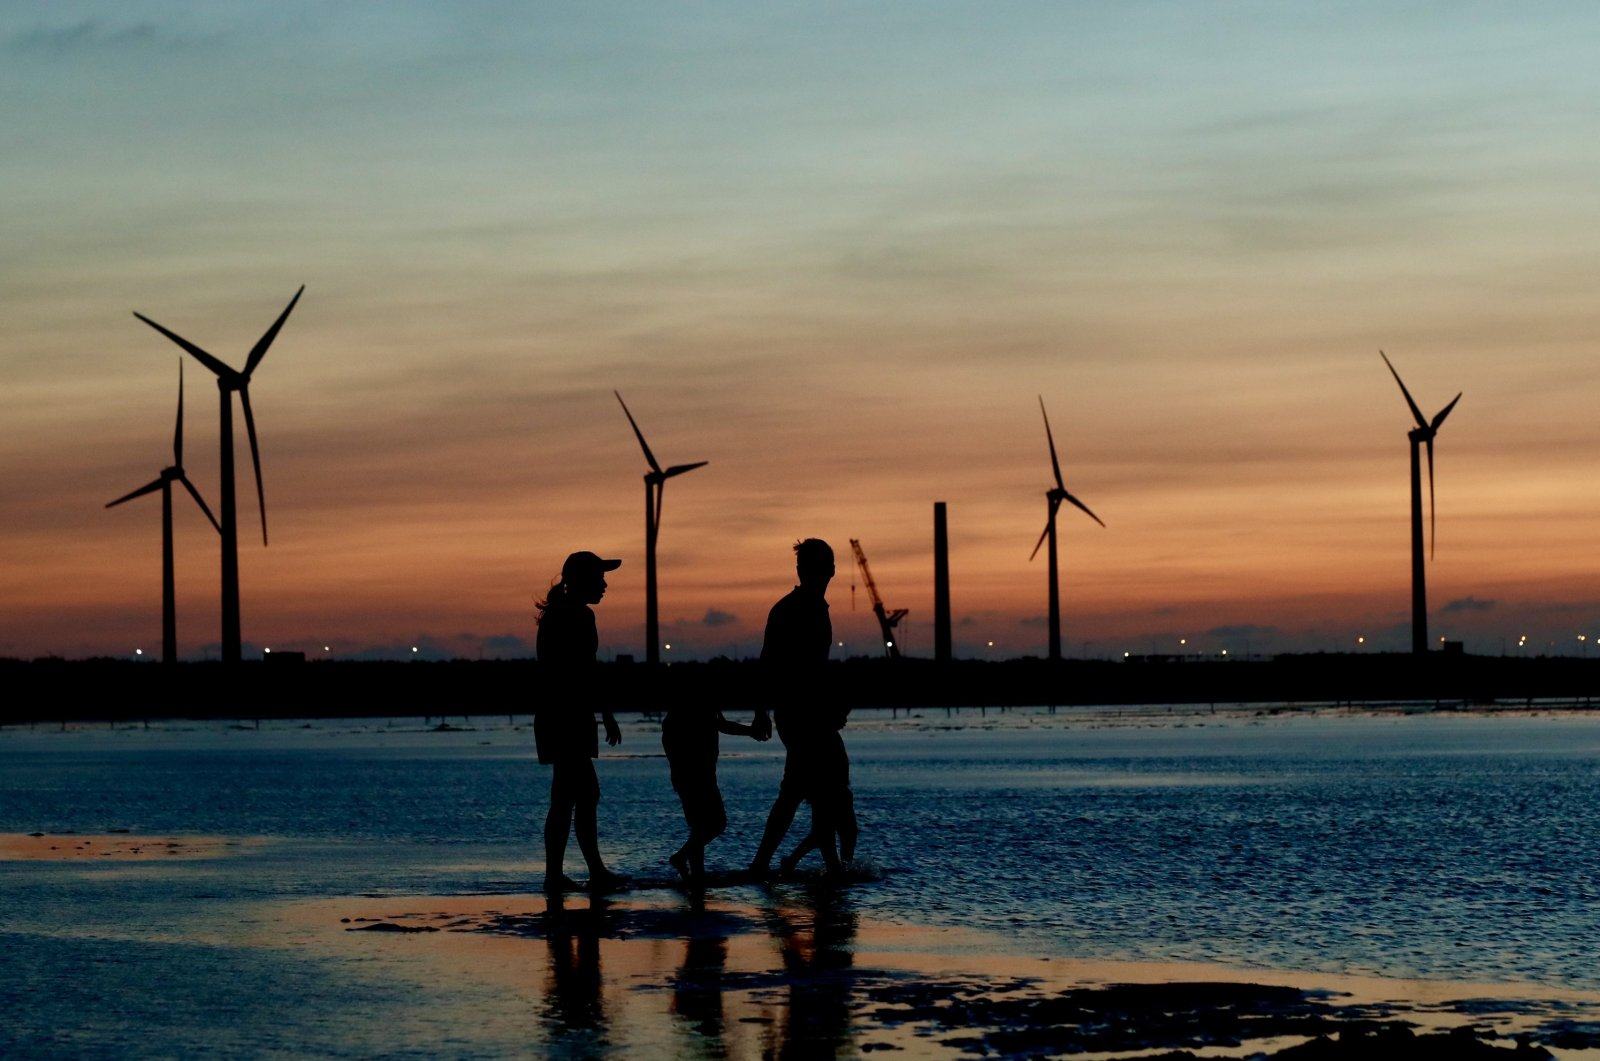 People walk next to wind turbines at sunset in Taichung, Taiwan, Sept. 15, 2020. (EPA File Photo)